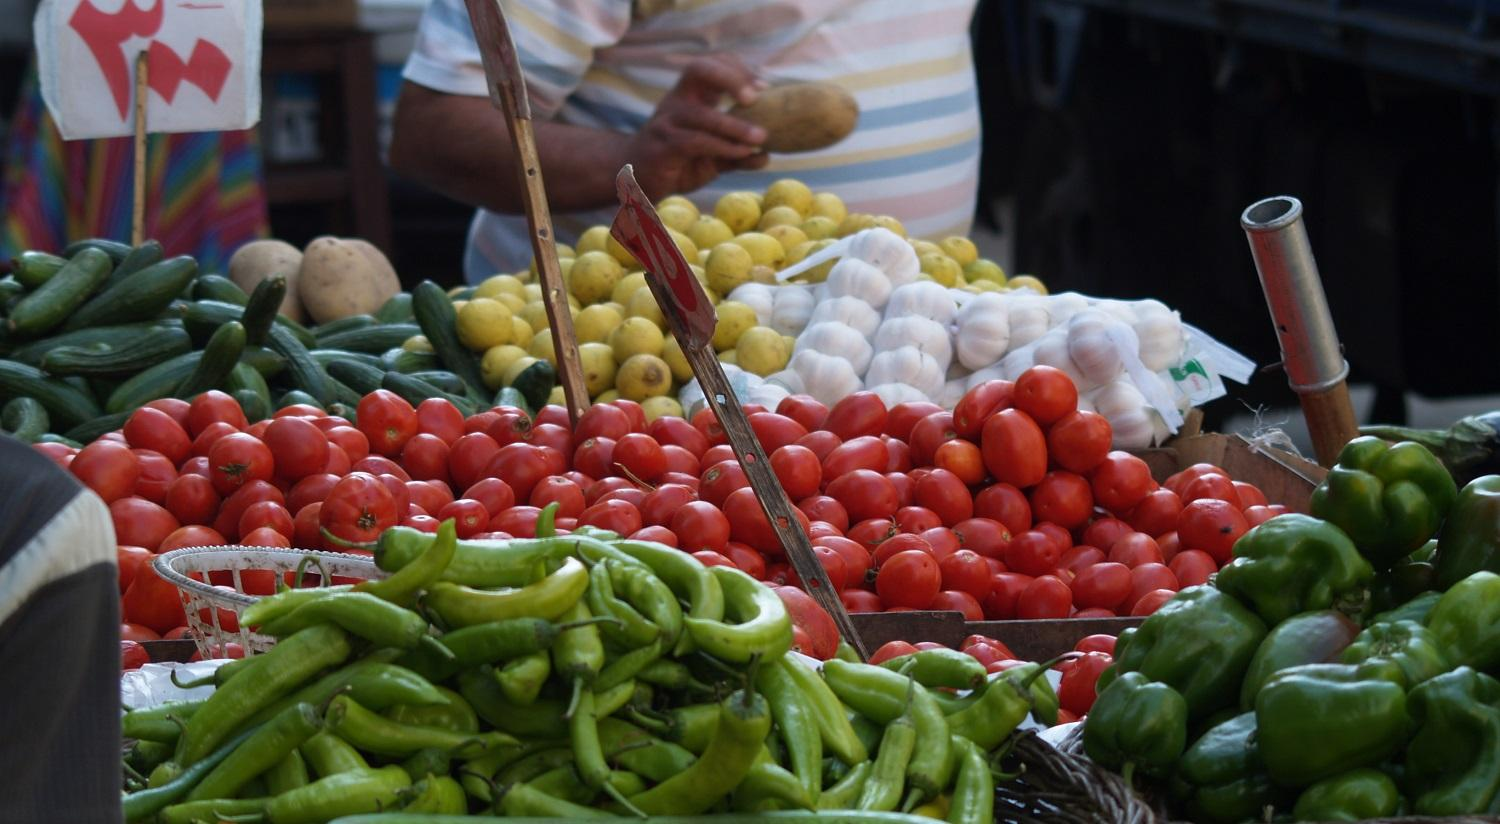 Organic, Chemical-Free & Unprocessed Food Sources in Egypt